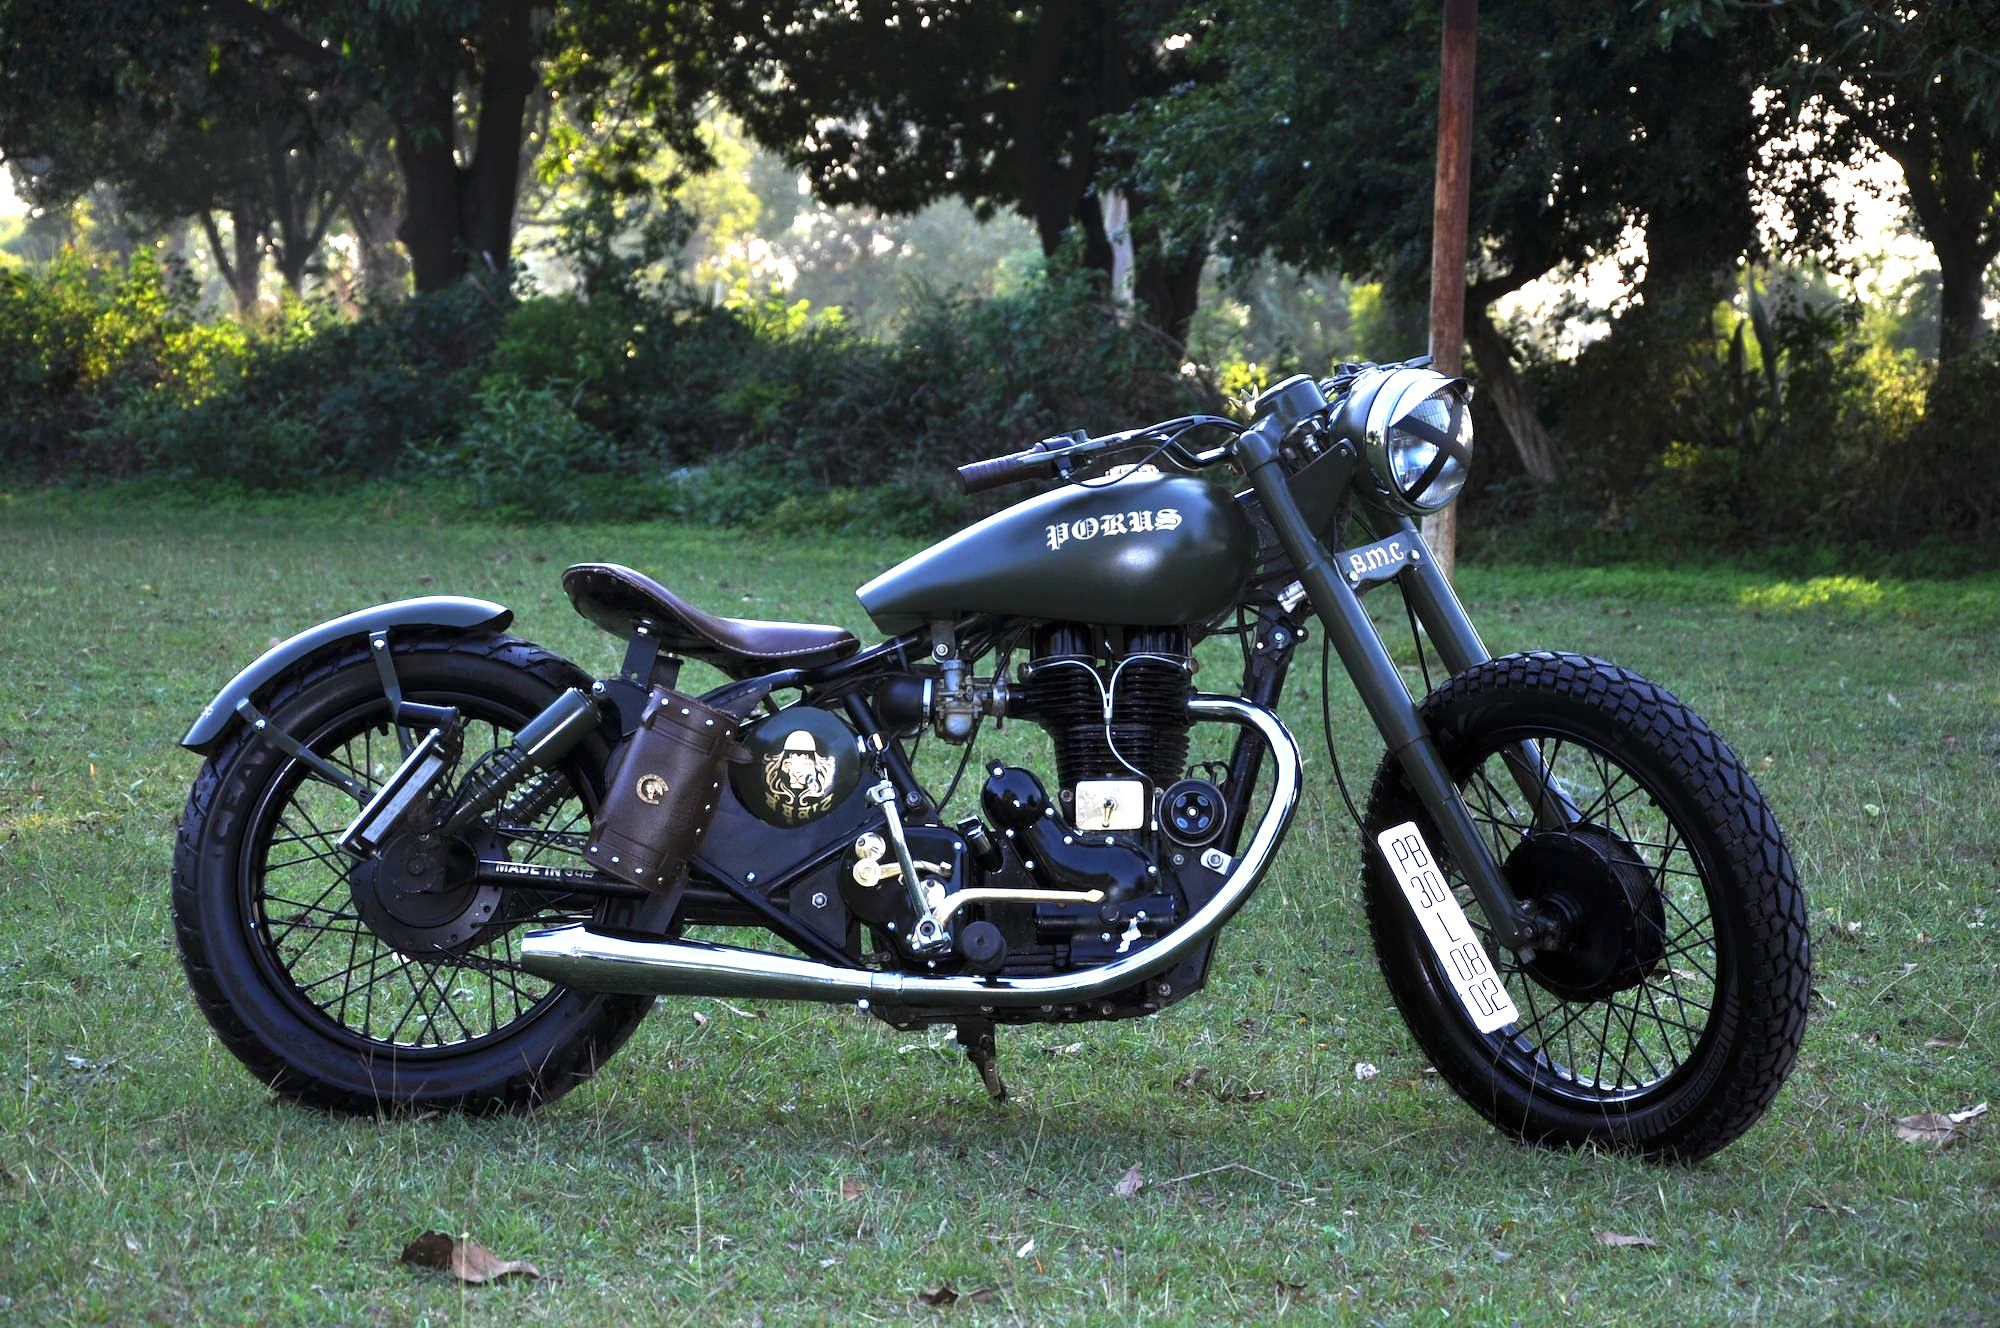 Royal Enfield Bullet 500 Army 2006 images #123608